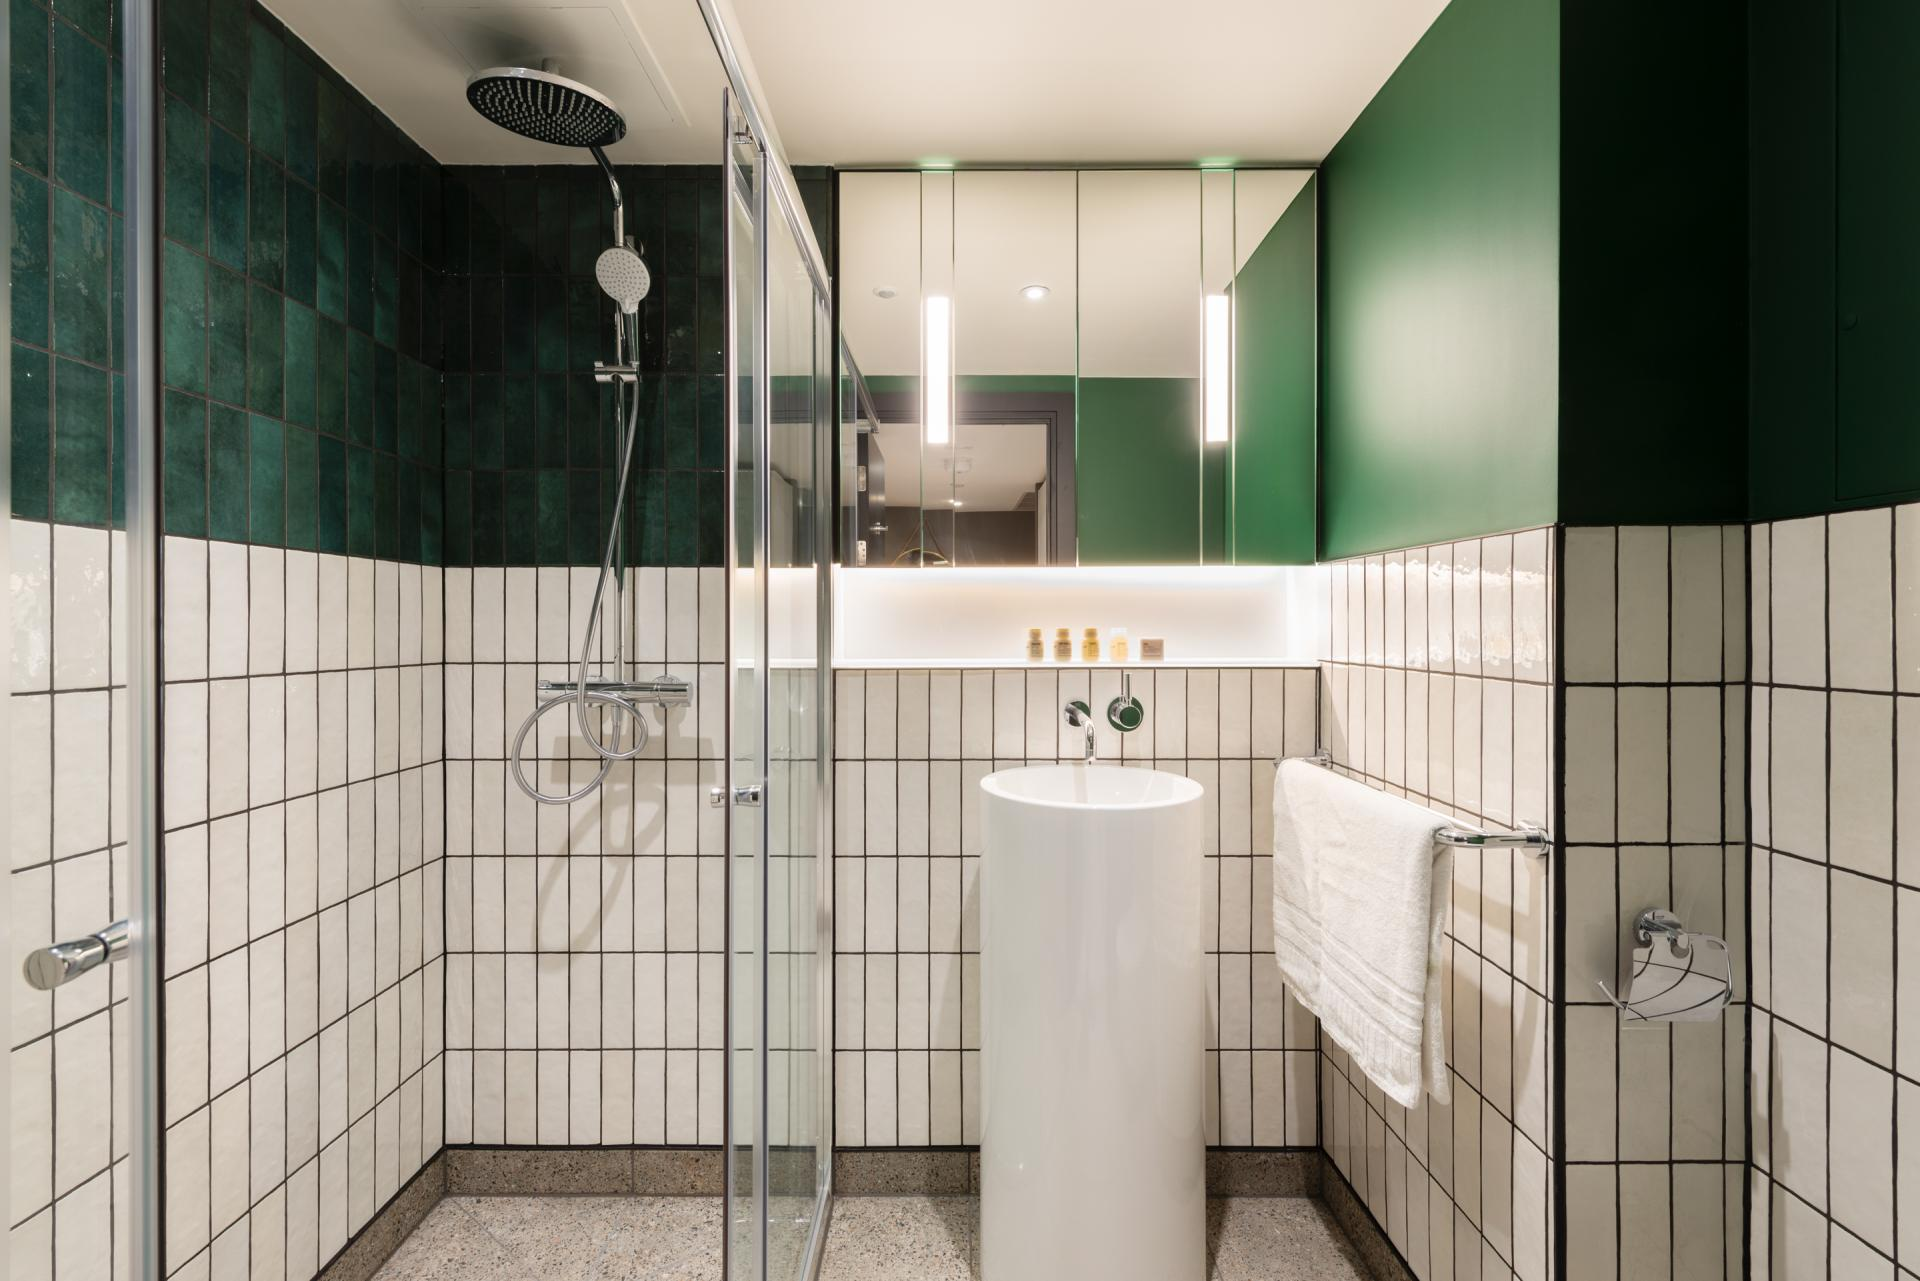 Bathroom at The Gate Apartments, Whitechapel, London - Citybase Apartments